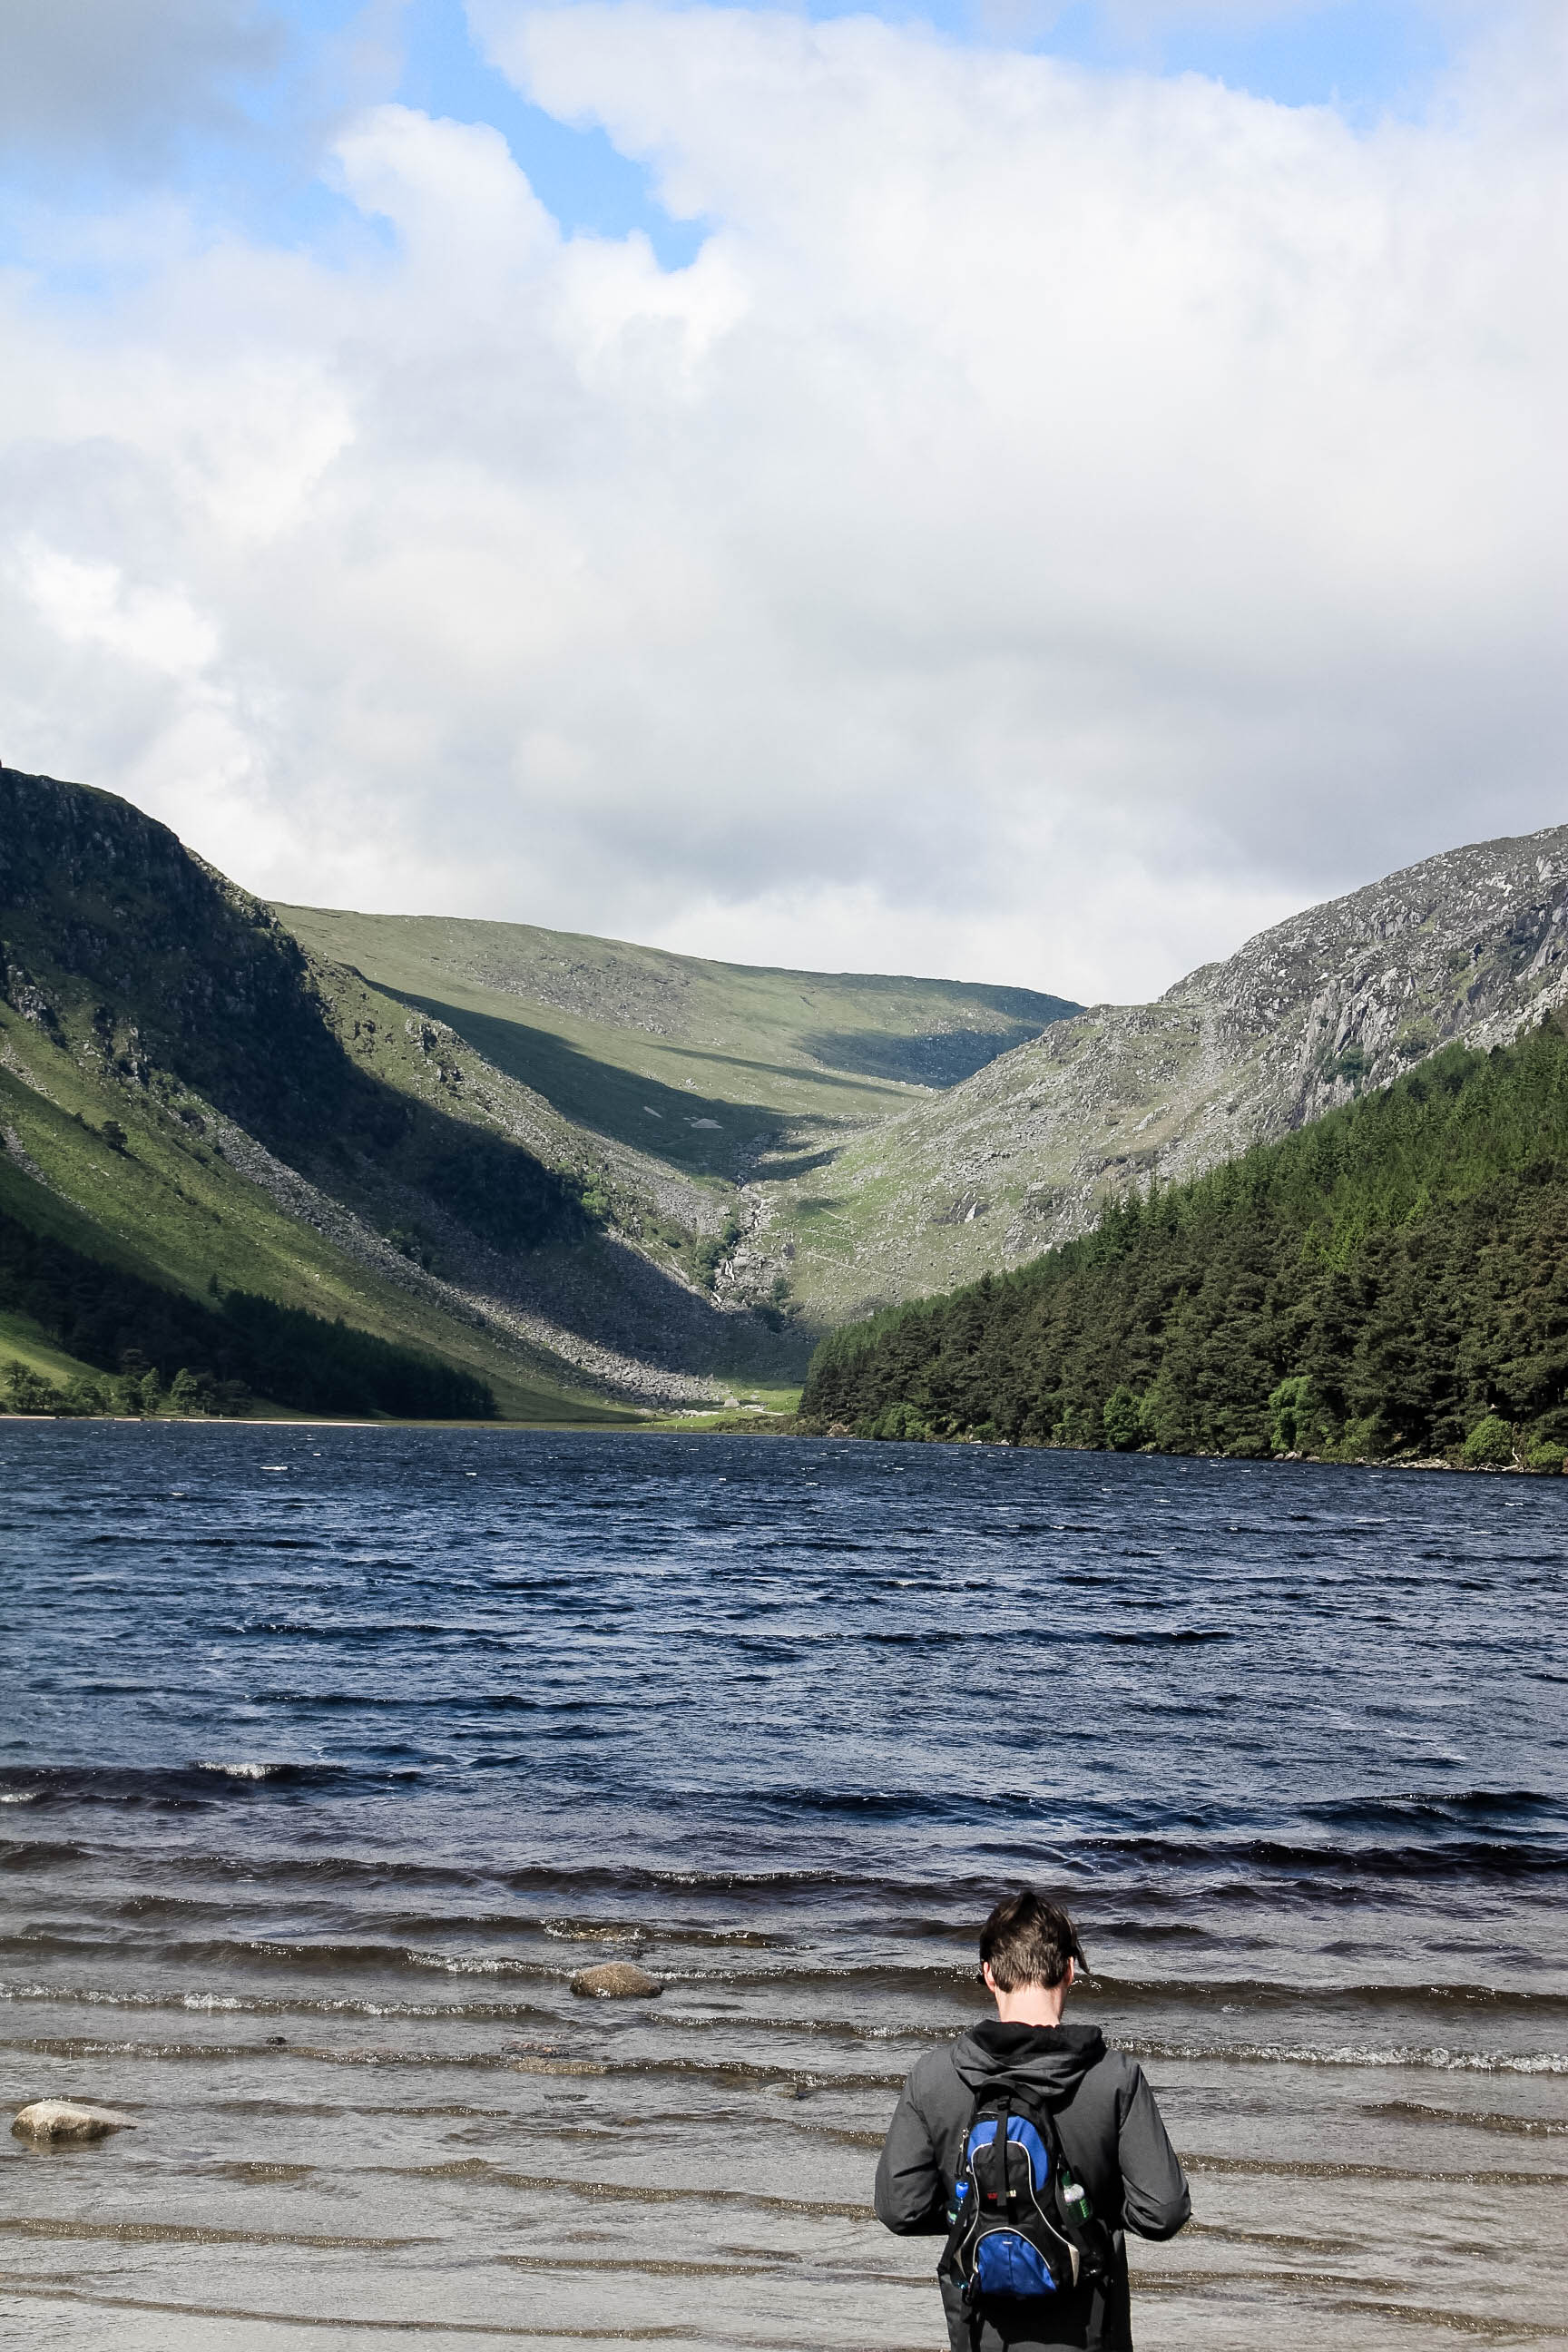 Glendalough - Things to do in Ireland - Sarah from True North Paper Co.